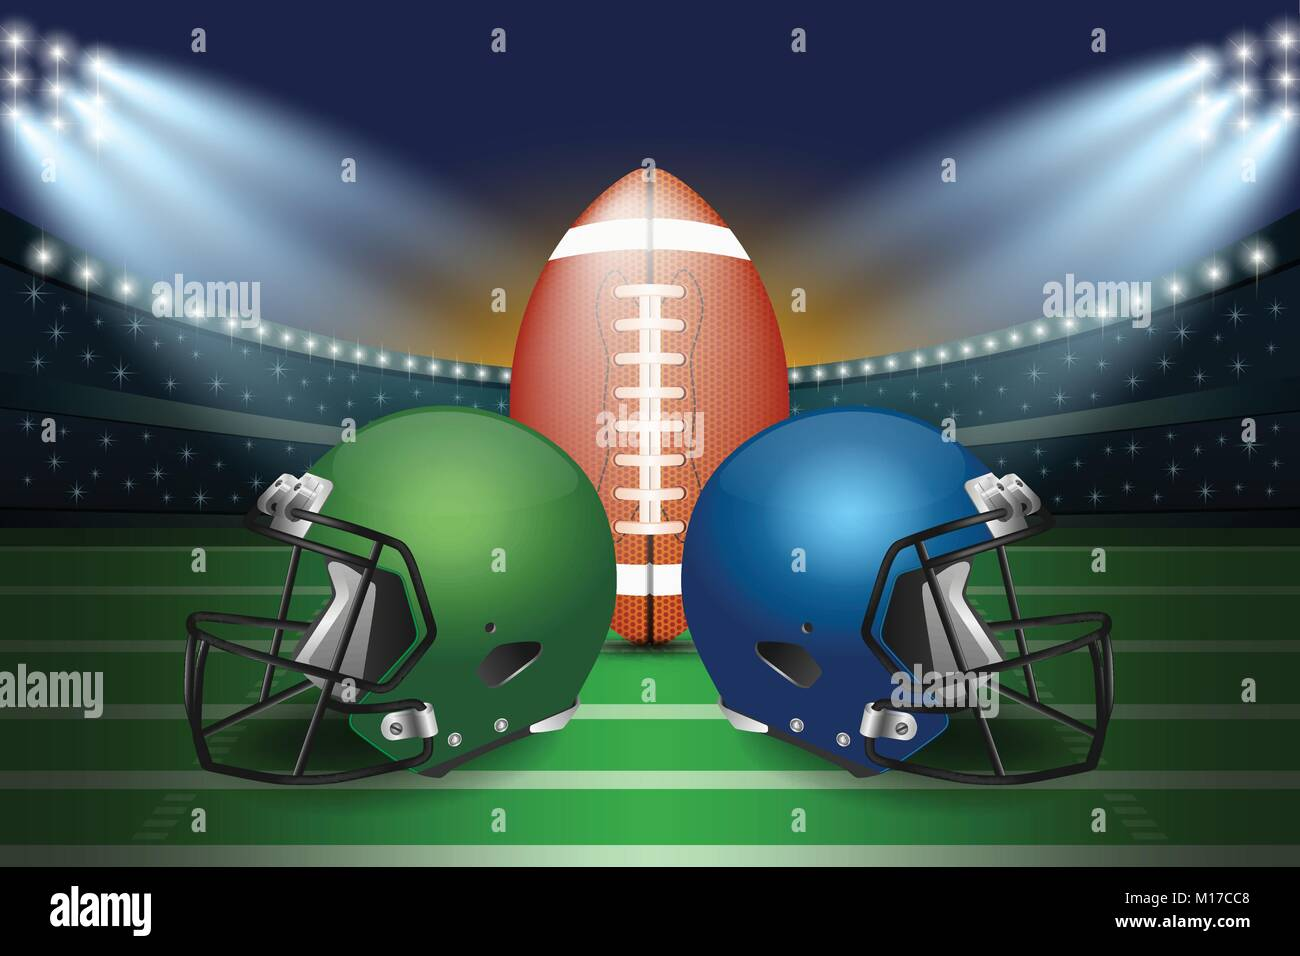 American football final match concept. Silver and green Helmets and football on field of stadium with spotlight - Stock Vector